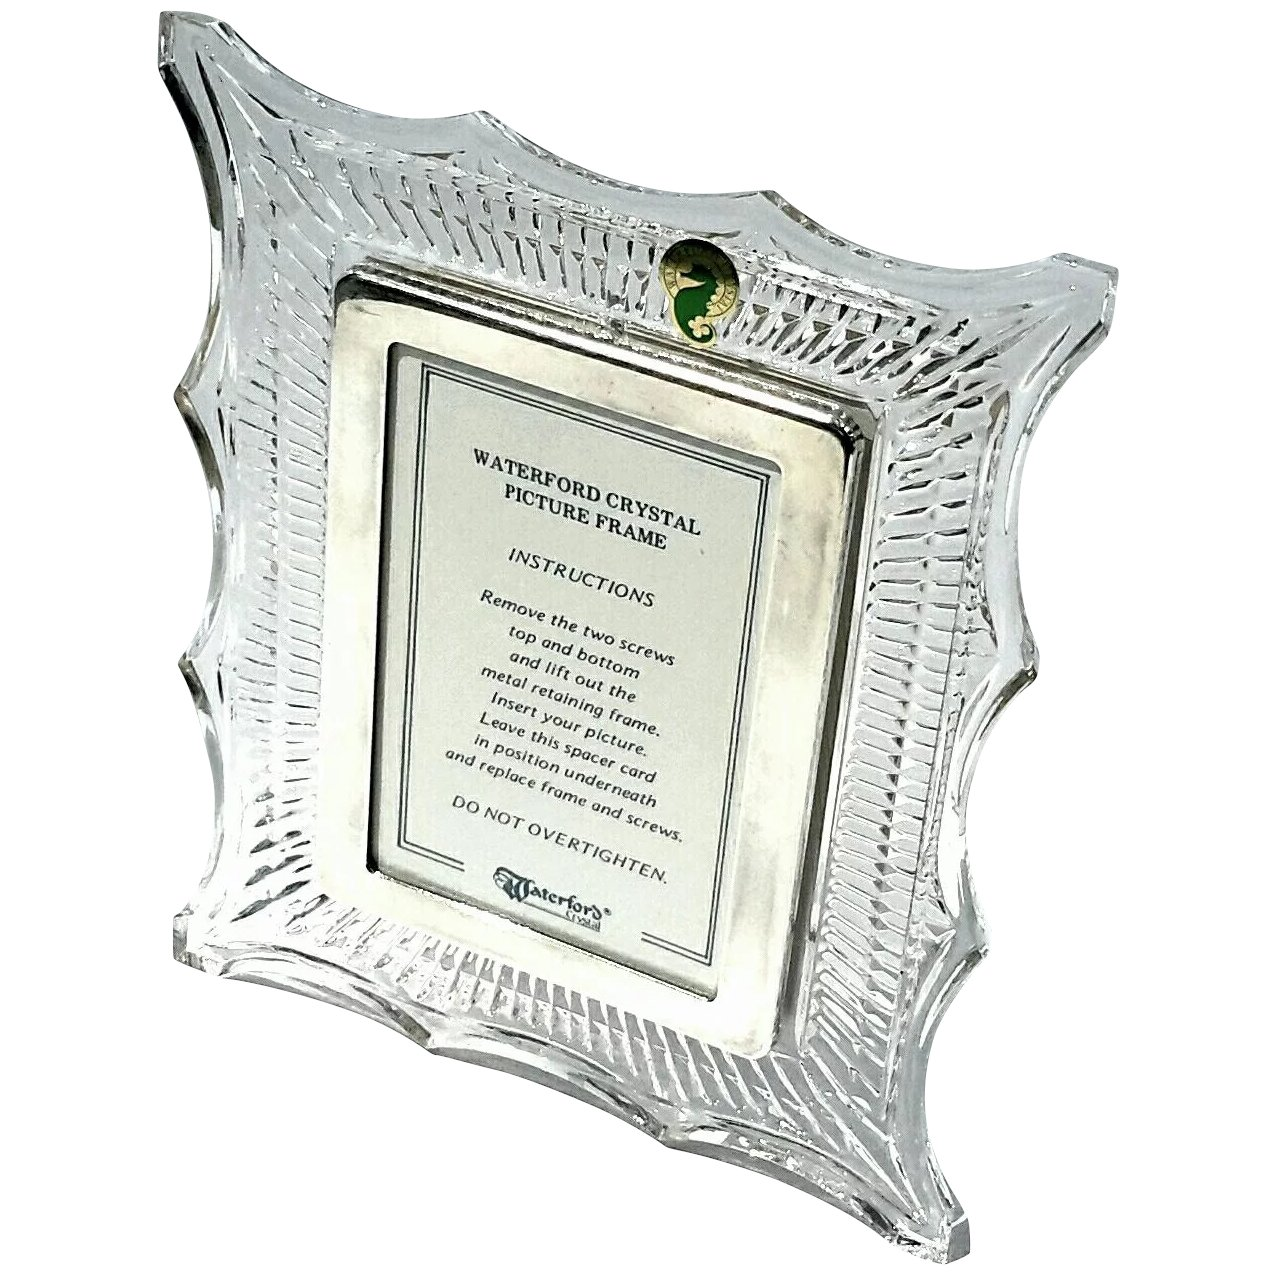 Signed Vintage Waterford Crystal Picture Frame : Stephen A. Kramer ...